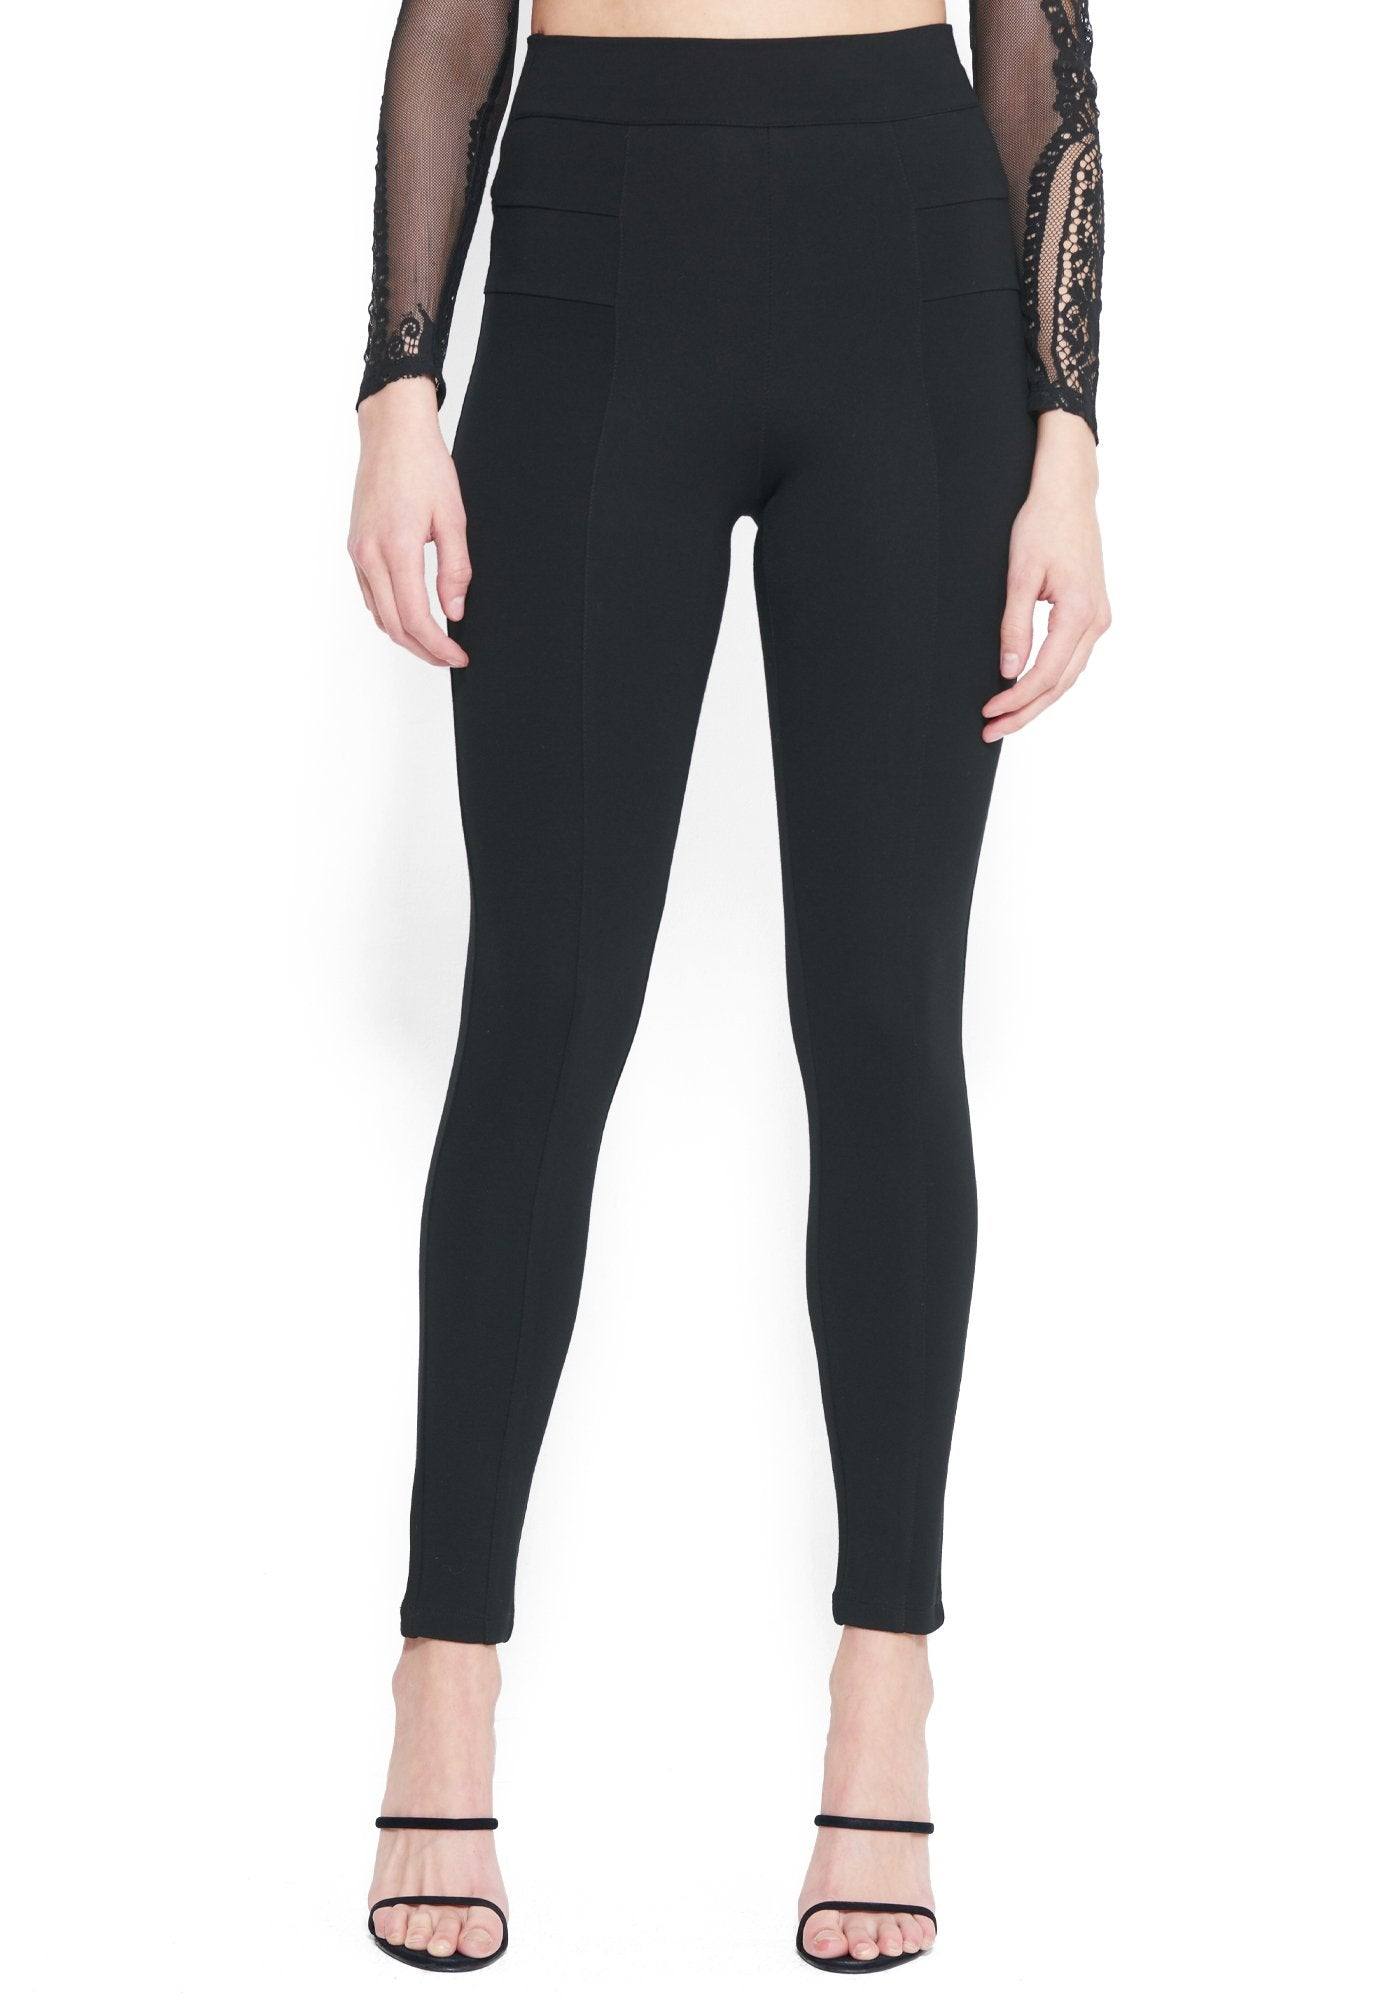 Bebe Women's Back Lacing Butt Lift Legging, Size XXS in BLACK Spandex/Nylon